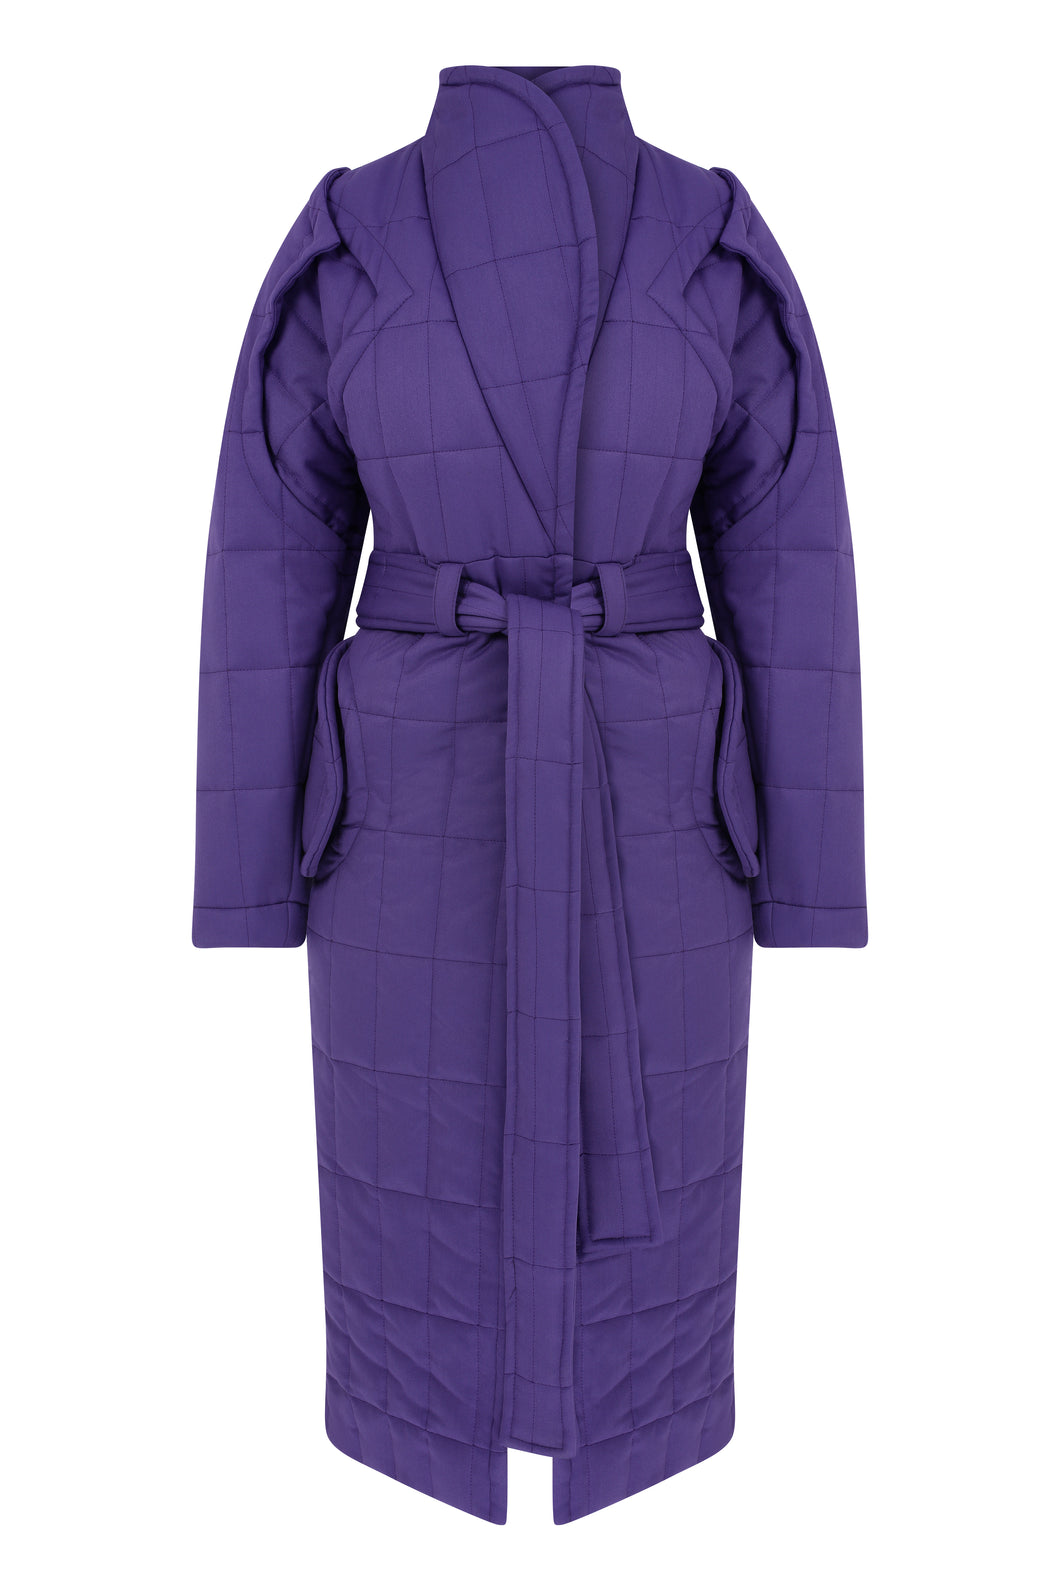 Curvy Me Puffer-Purple